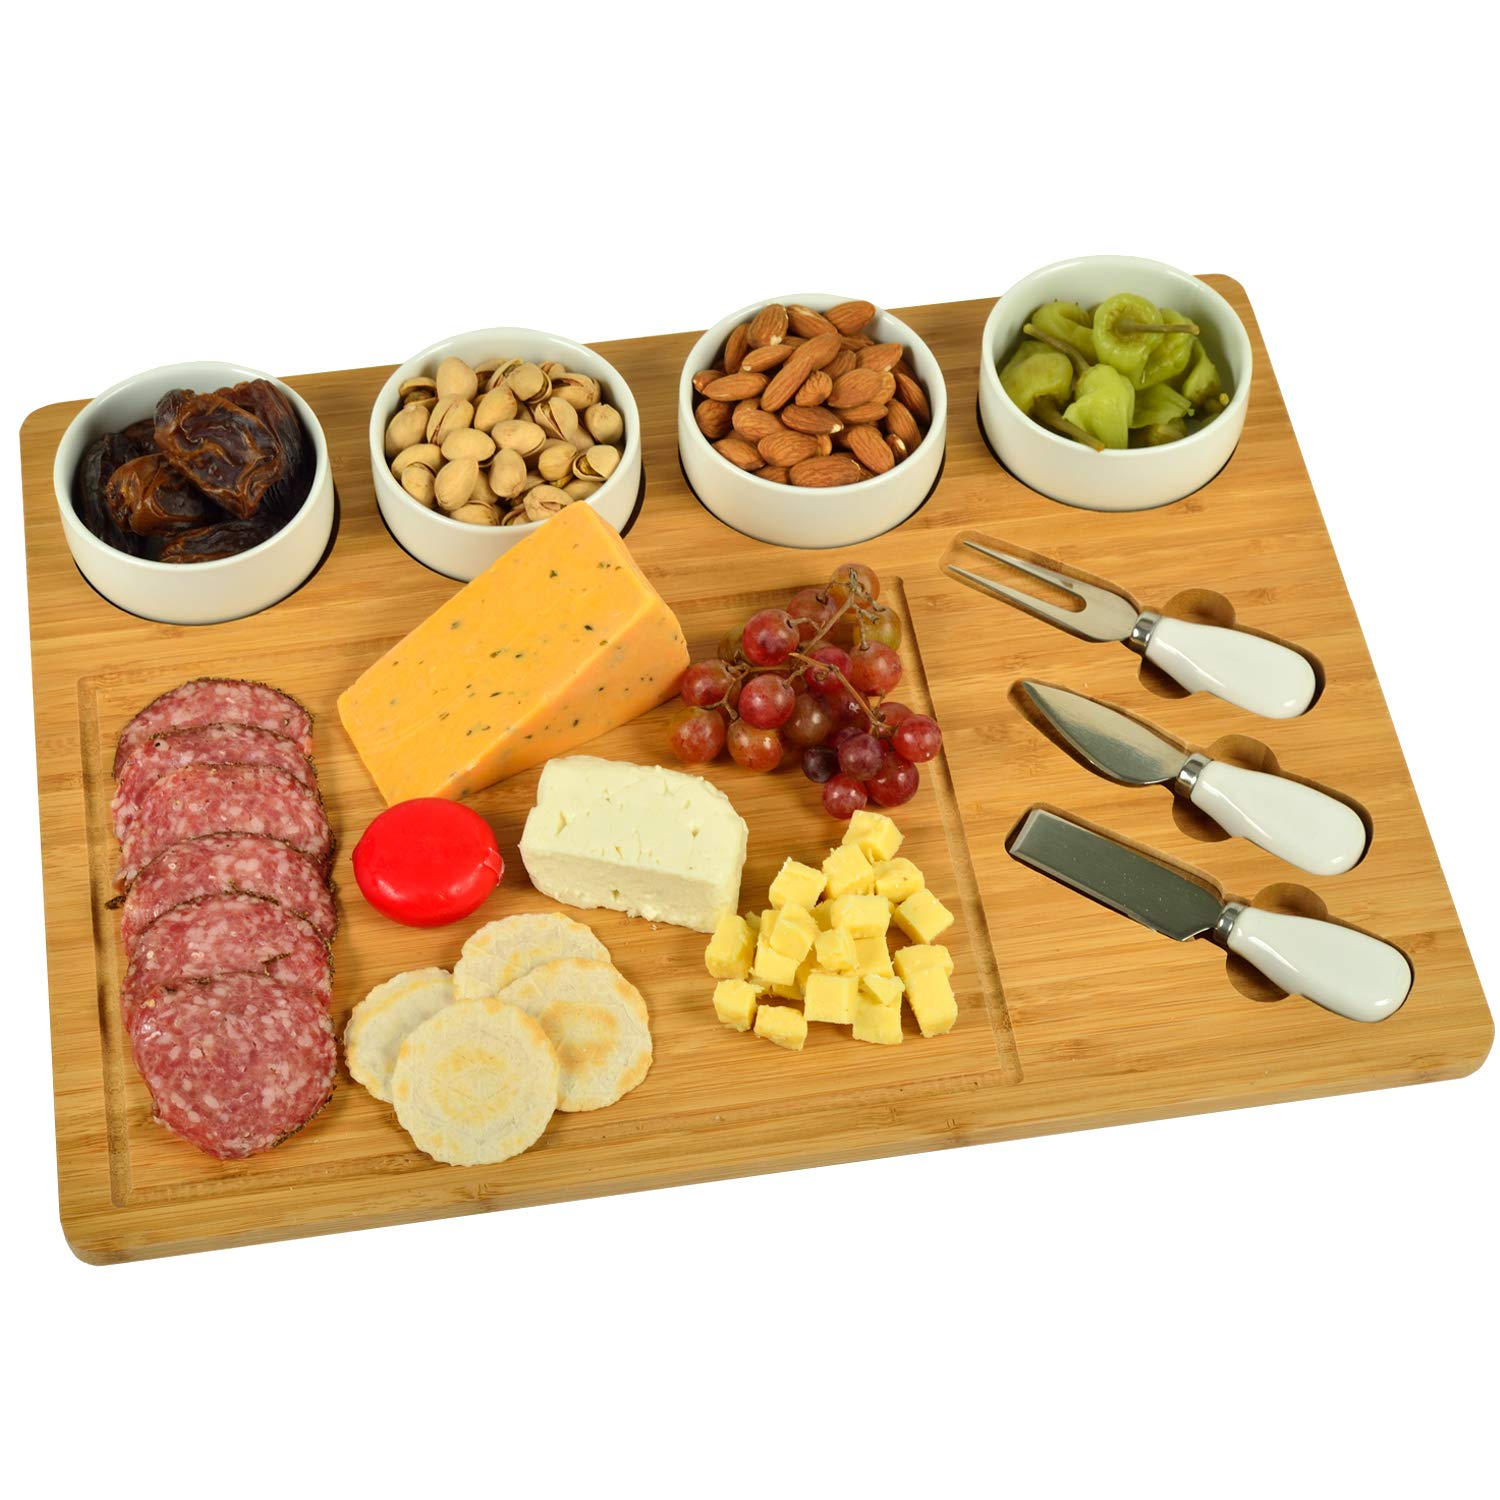 Picnic at Ascot Bamboo Large Cheese/Charcuterie Board with 4 Ceramic Bowls & 3 Stainless Steel Cheese Tools - 17'' x 13''- Designed & Quality Checked in the USA